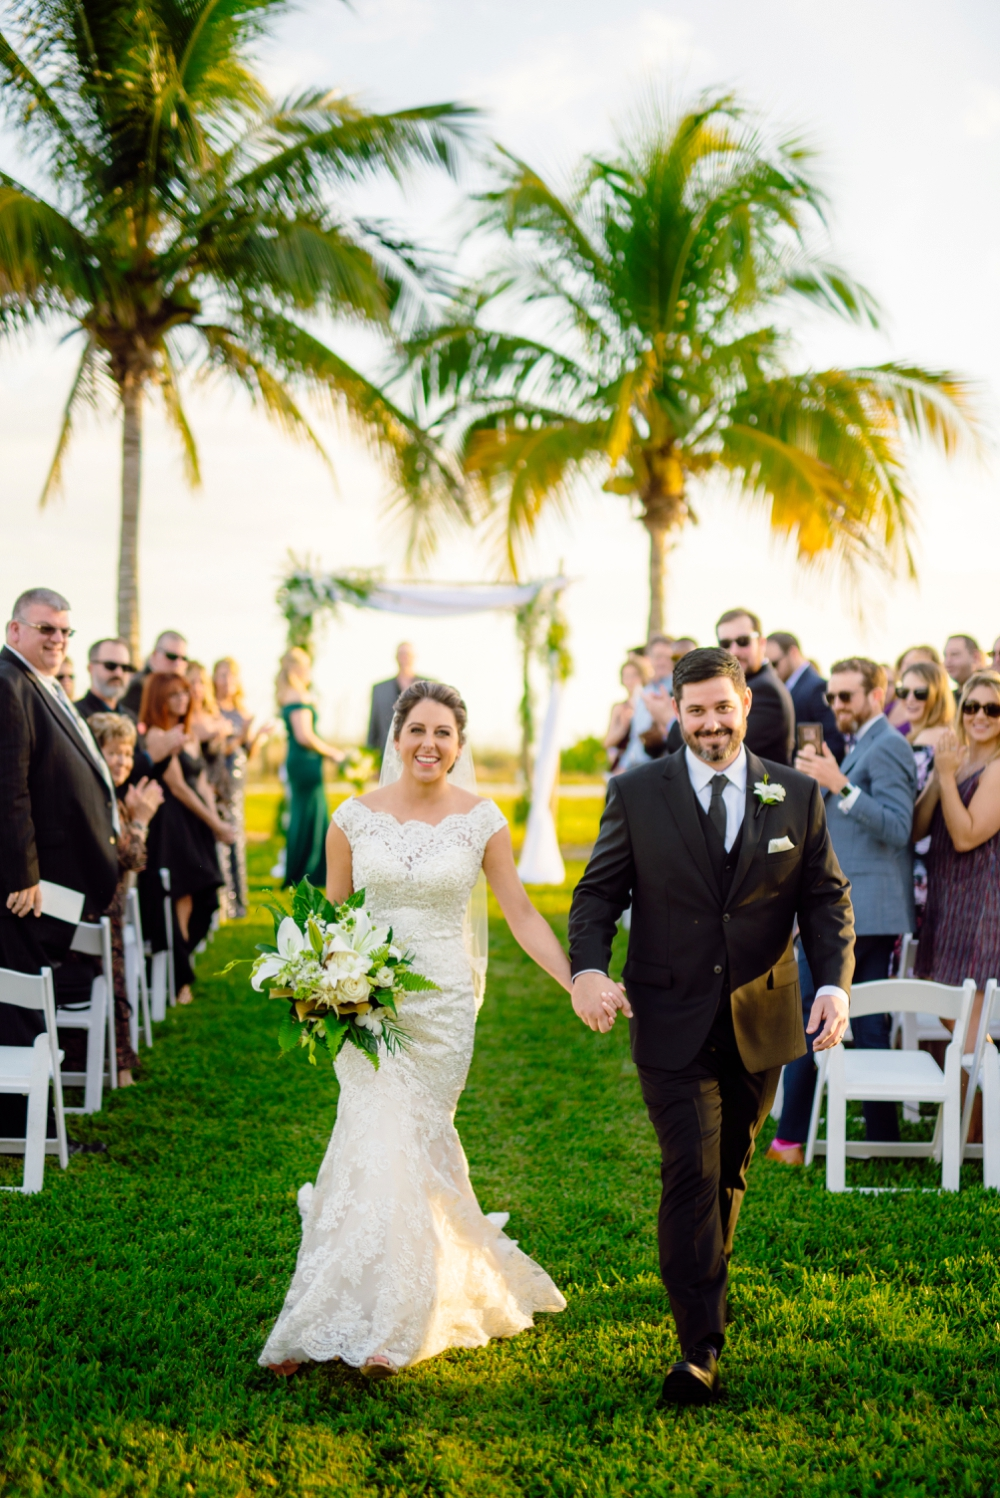 Matt Steeves Photography Casa Ybel Weddings Floral Artistry Sanibel_0085.jpg